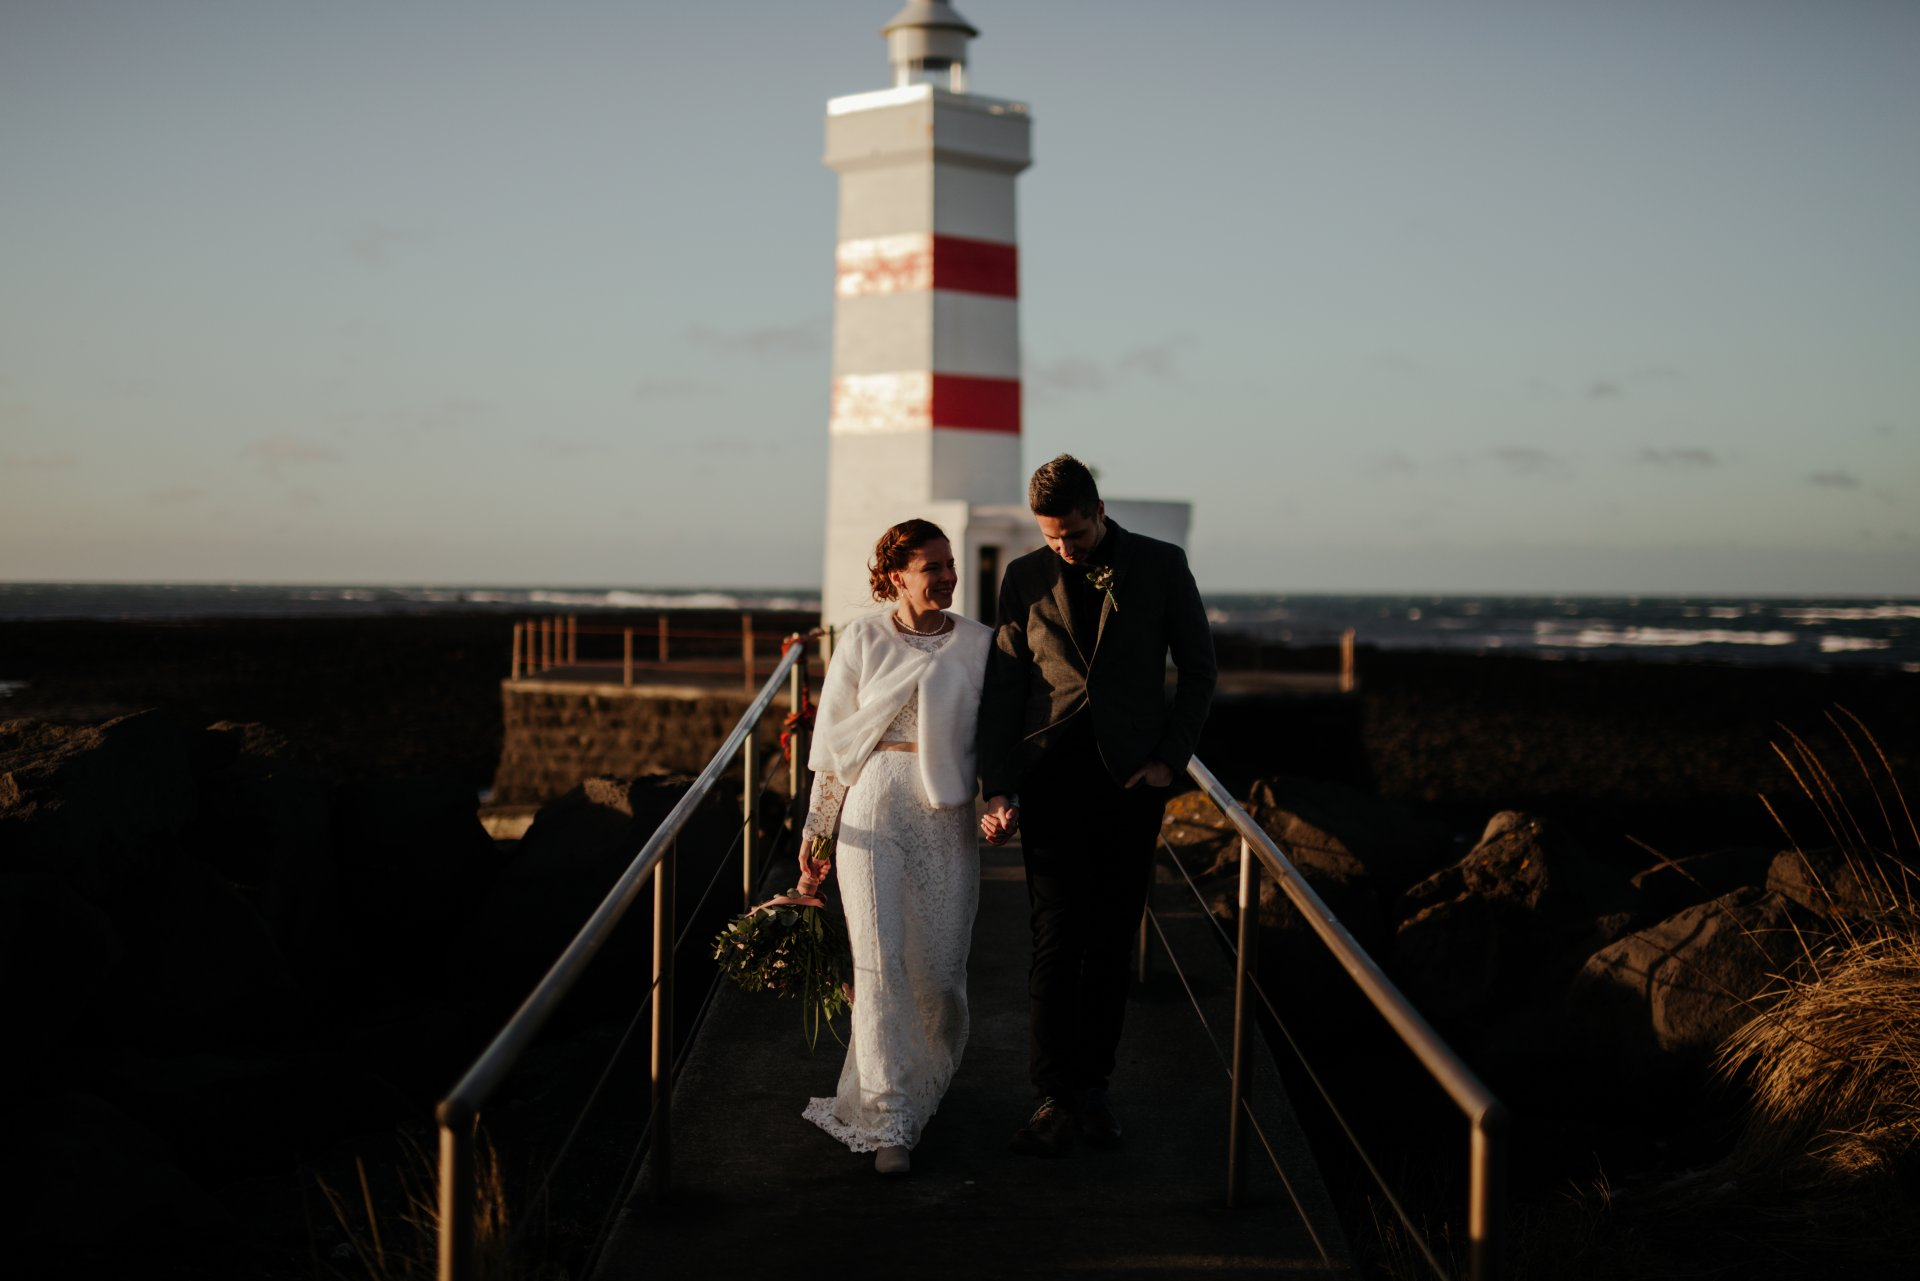 The wedding was held at the toe of Reykjanes peninsula, at Garðskagaviti (lighthouse of Garður) on a cold but beautiful February day. Photographer: Renáta Török-Bognár